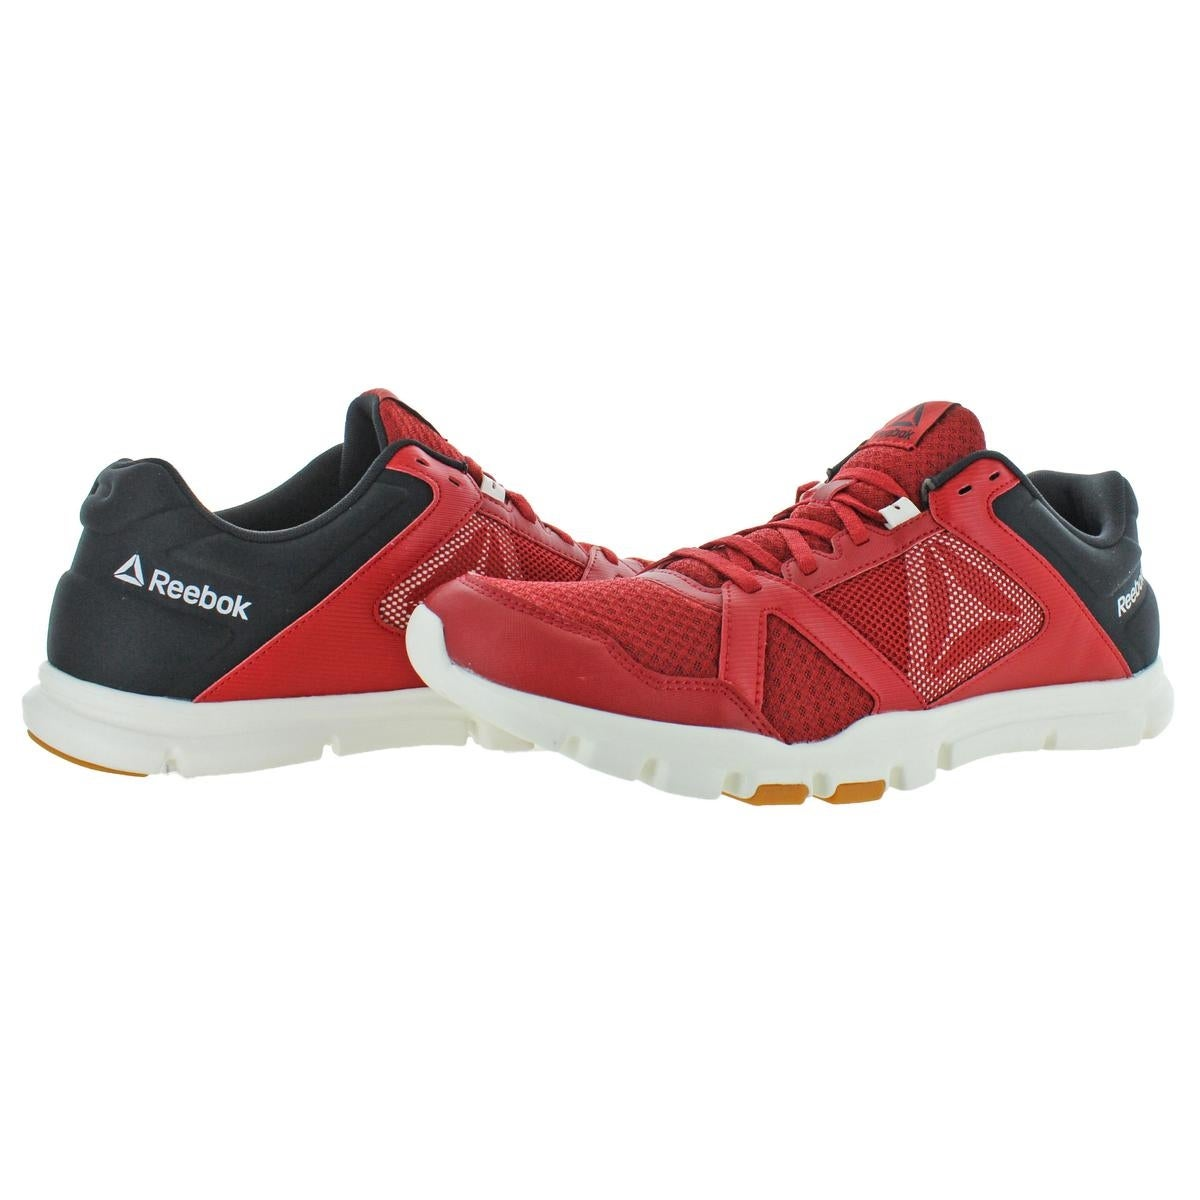 584fbdc989192 Reebok Mens Yourflex Train 10 MT Running, Cross Training Shoes Athletic  Workout